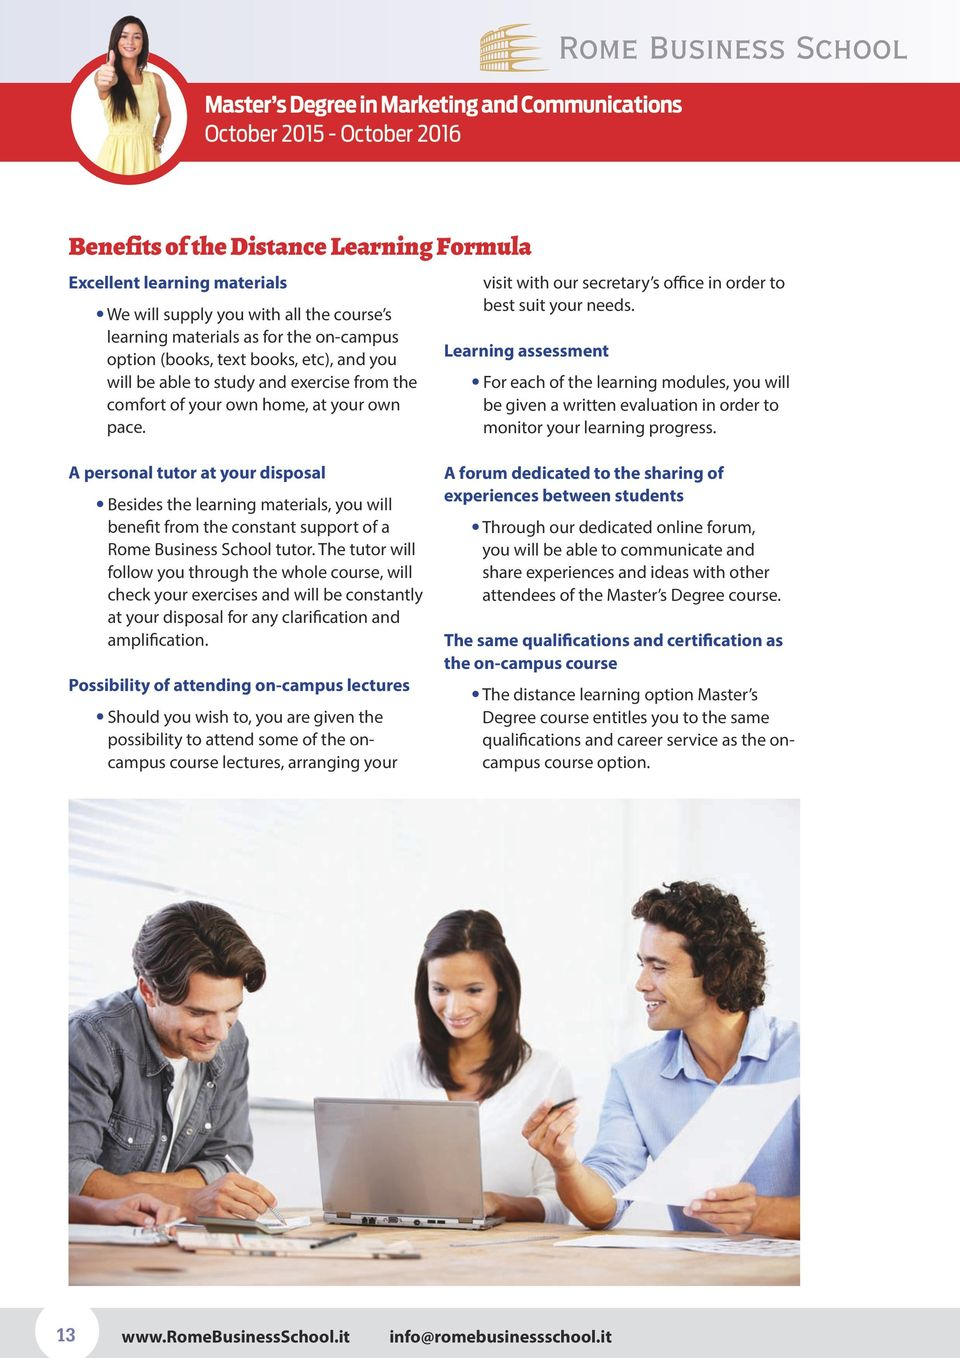 Learning assessment For each of the learning modules, you will be given a written evaluation in order to monitor your learning progress.